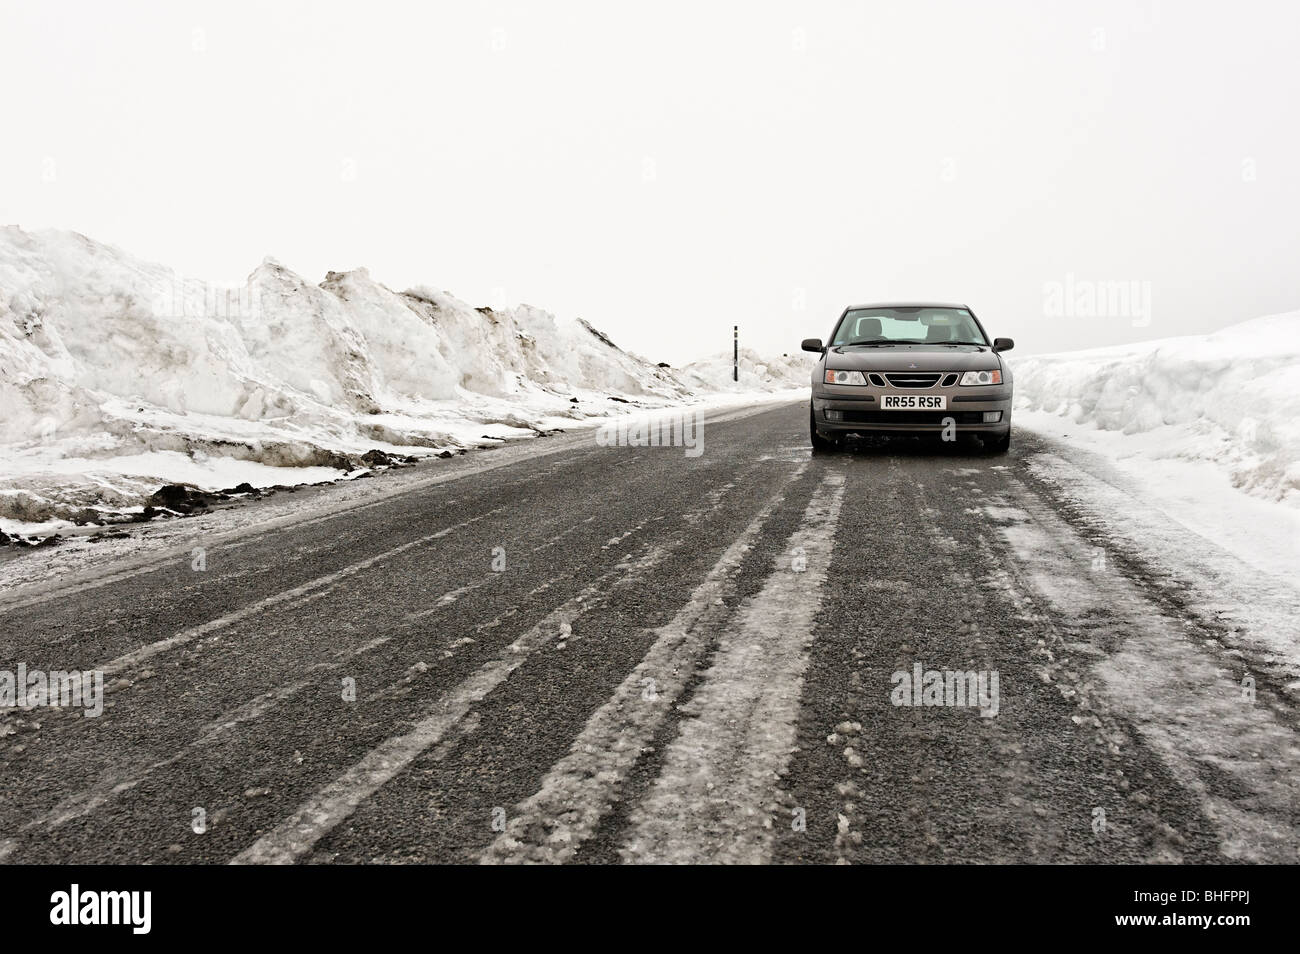 Winter road in North Pennine road cleared of snow - Stock Image